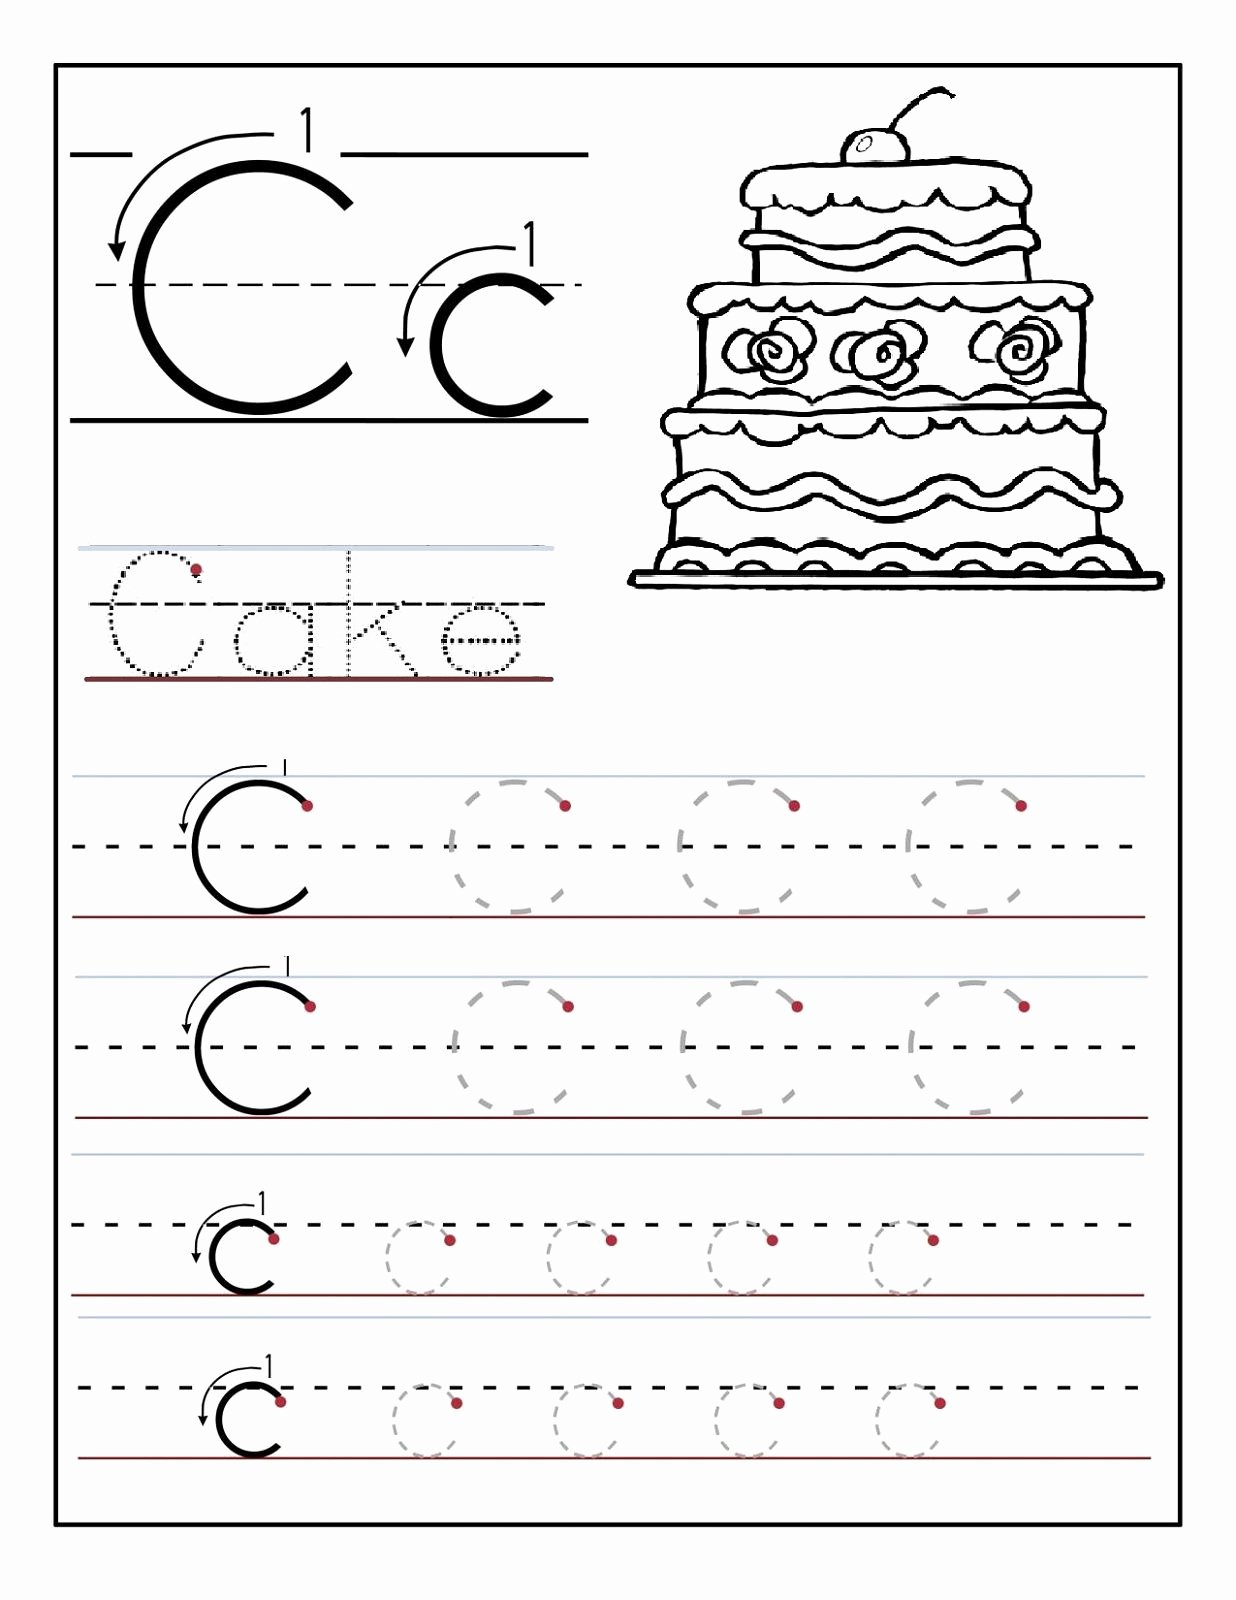 Letter C Tracing Worksheets for Preschoolers Free Trace the Letter C Worksheets